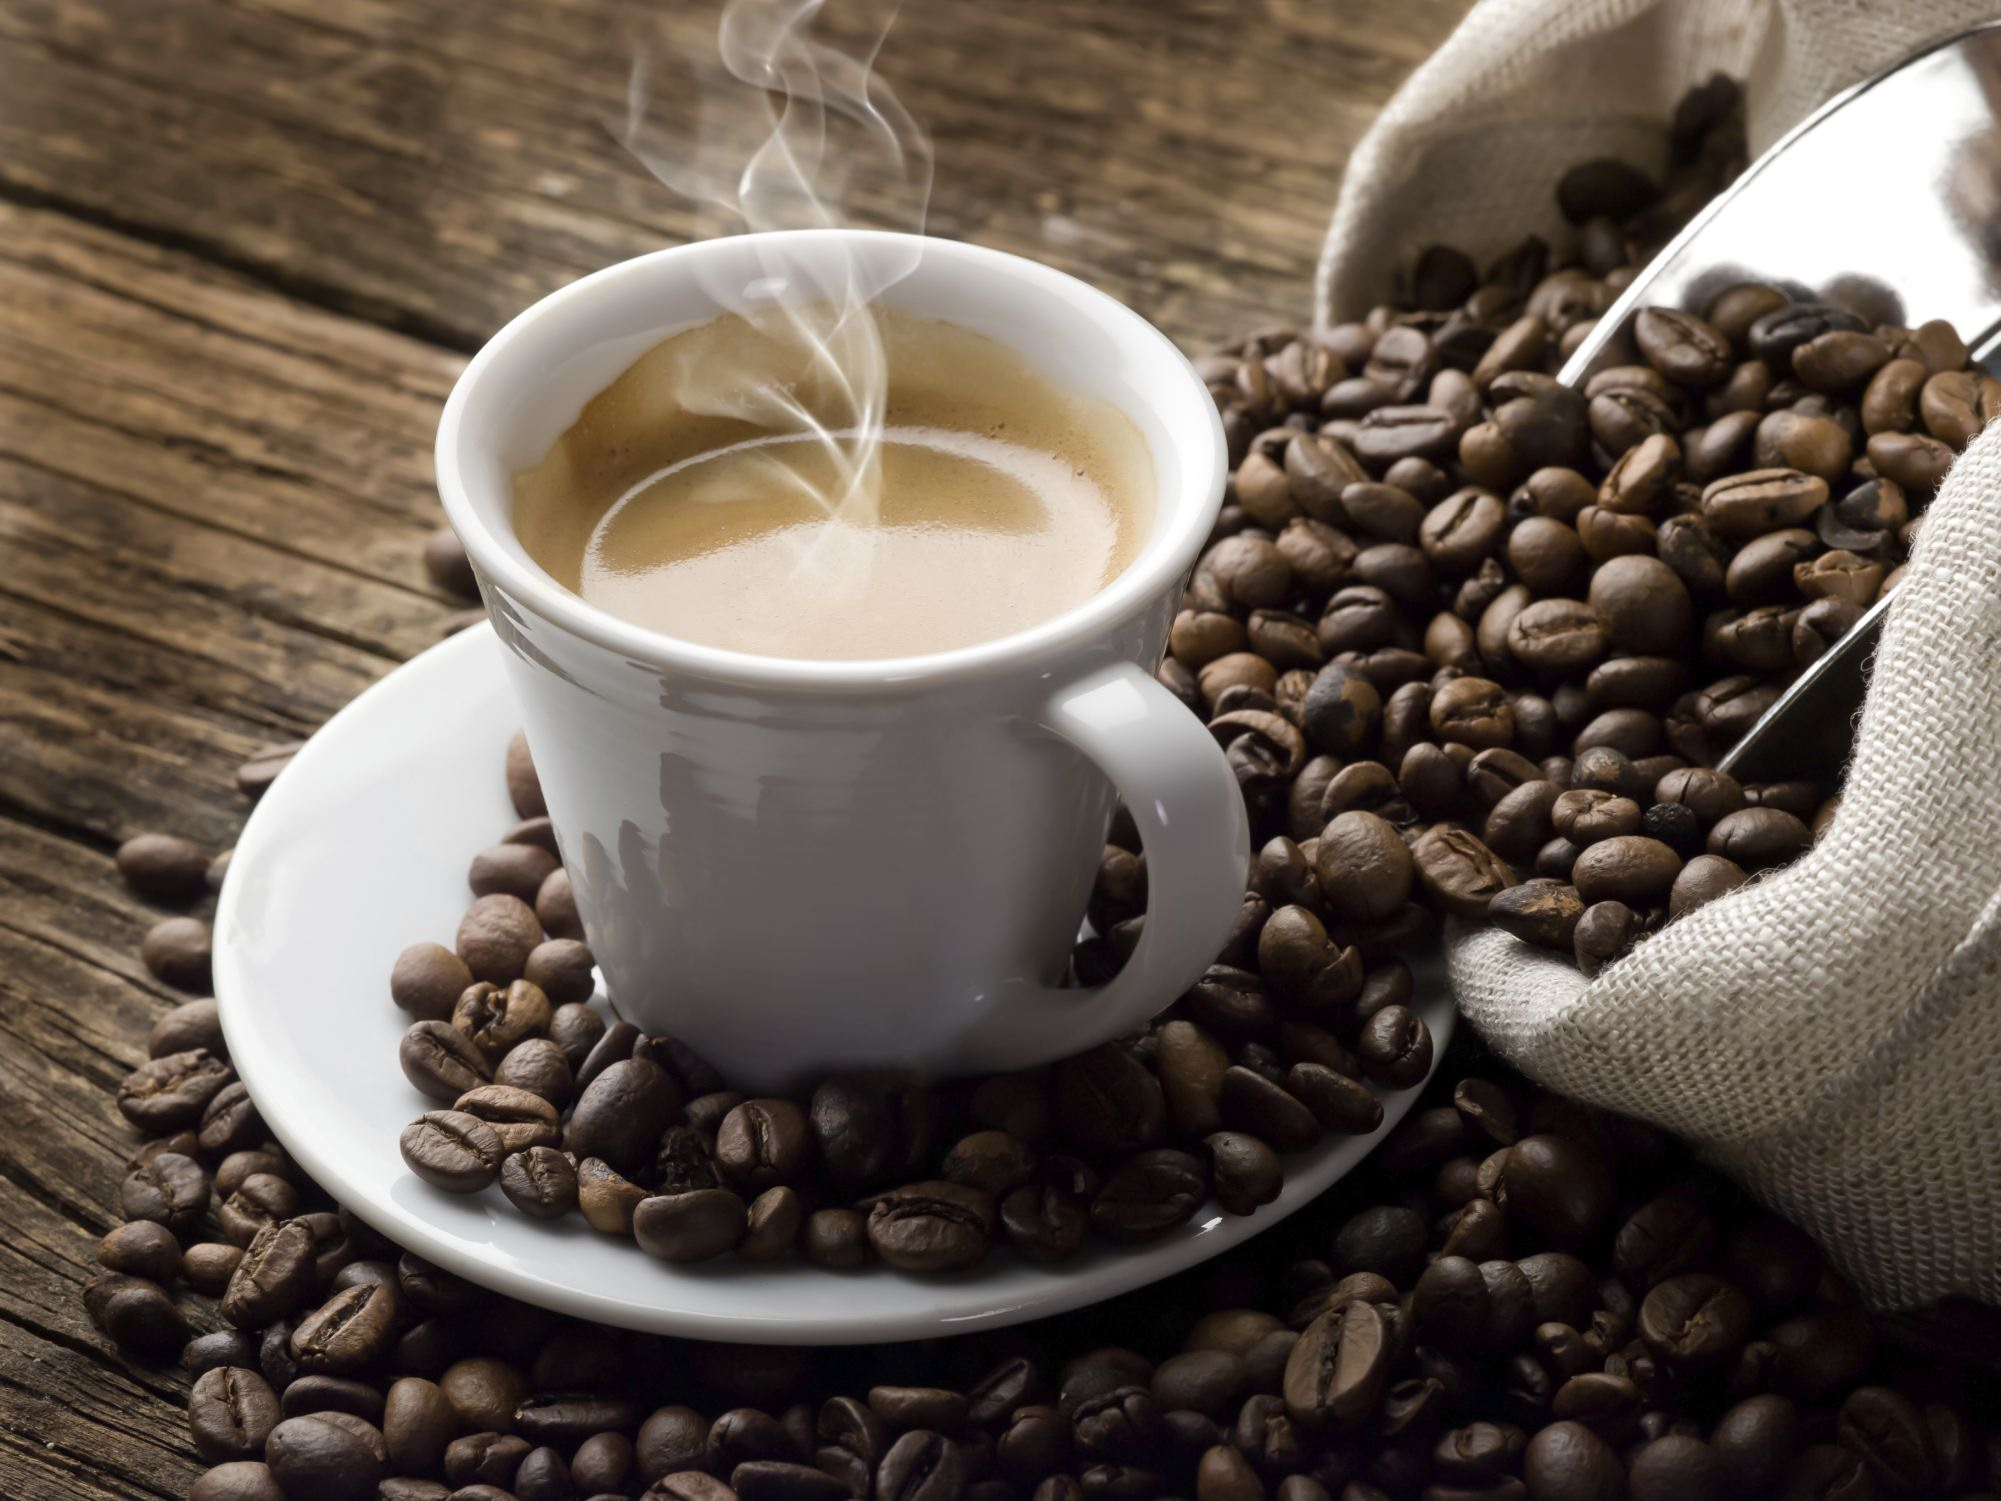 Original Good Morning Images With Coffee Friends